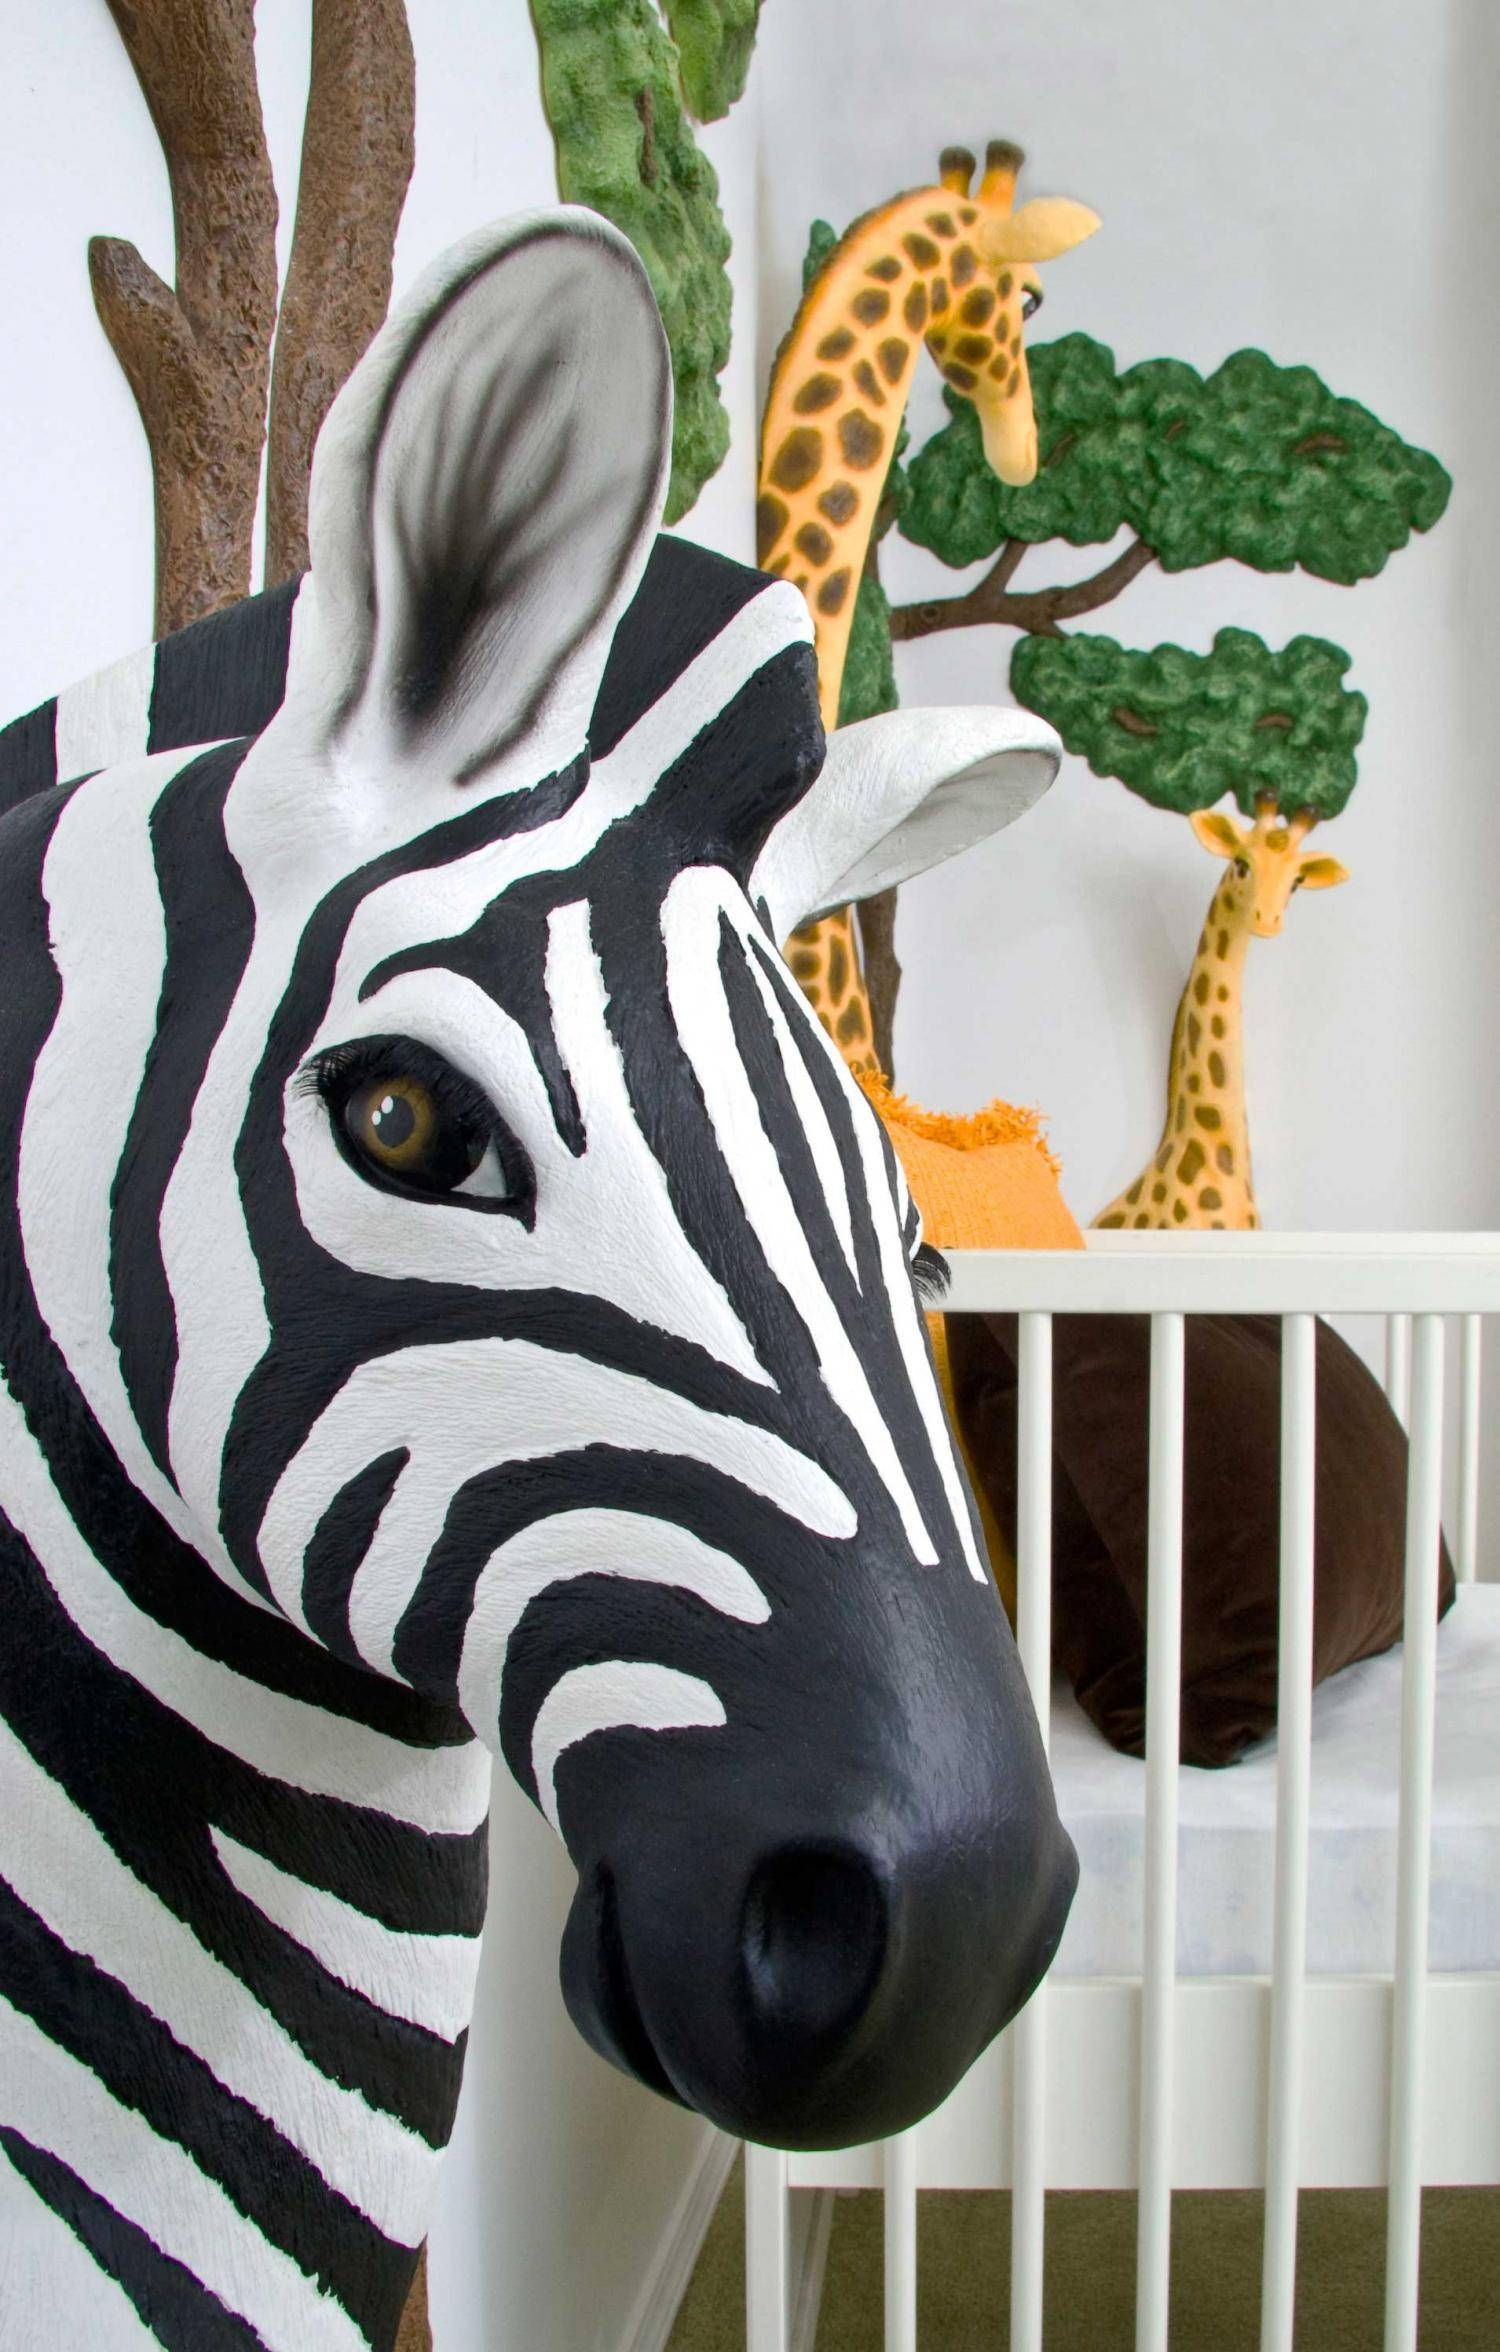 Wall Art | Spectrum Scientifics' Store Blog With Regard To Best And Newest Zebra 3d Wall Art (View 1 of 20)